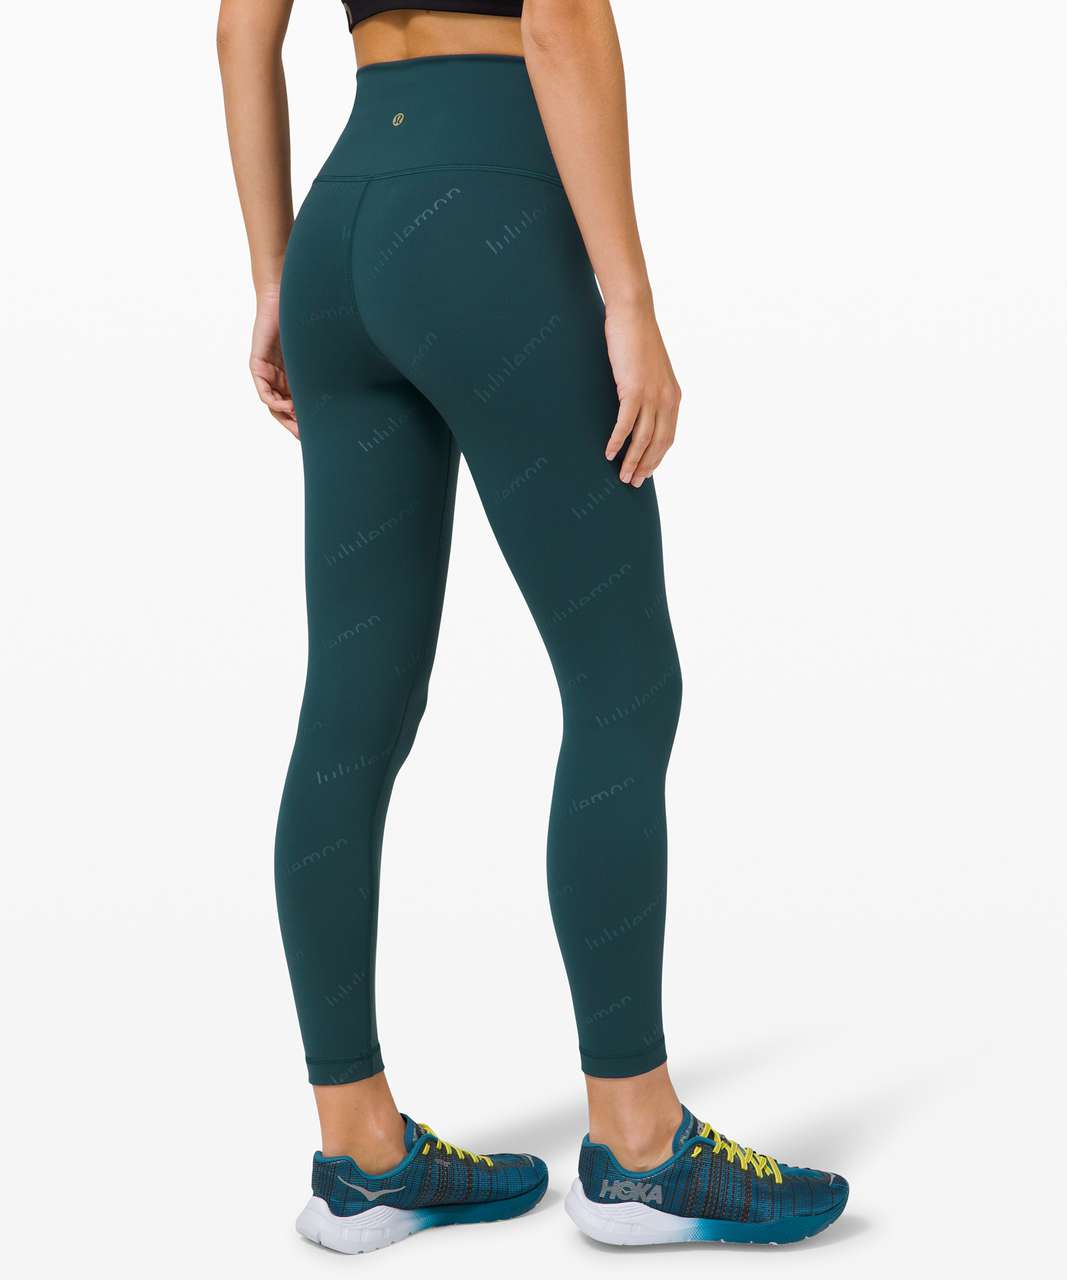 "Lululemon Wunder Train High-Rise Tight 25"" *Special Edition - Embossed Lululemon Submarine"